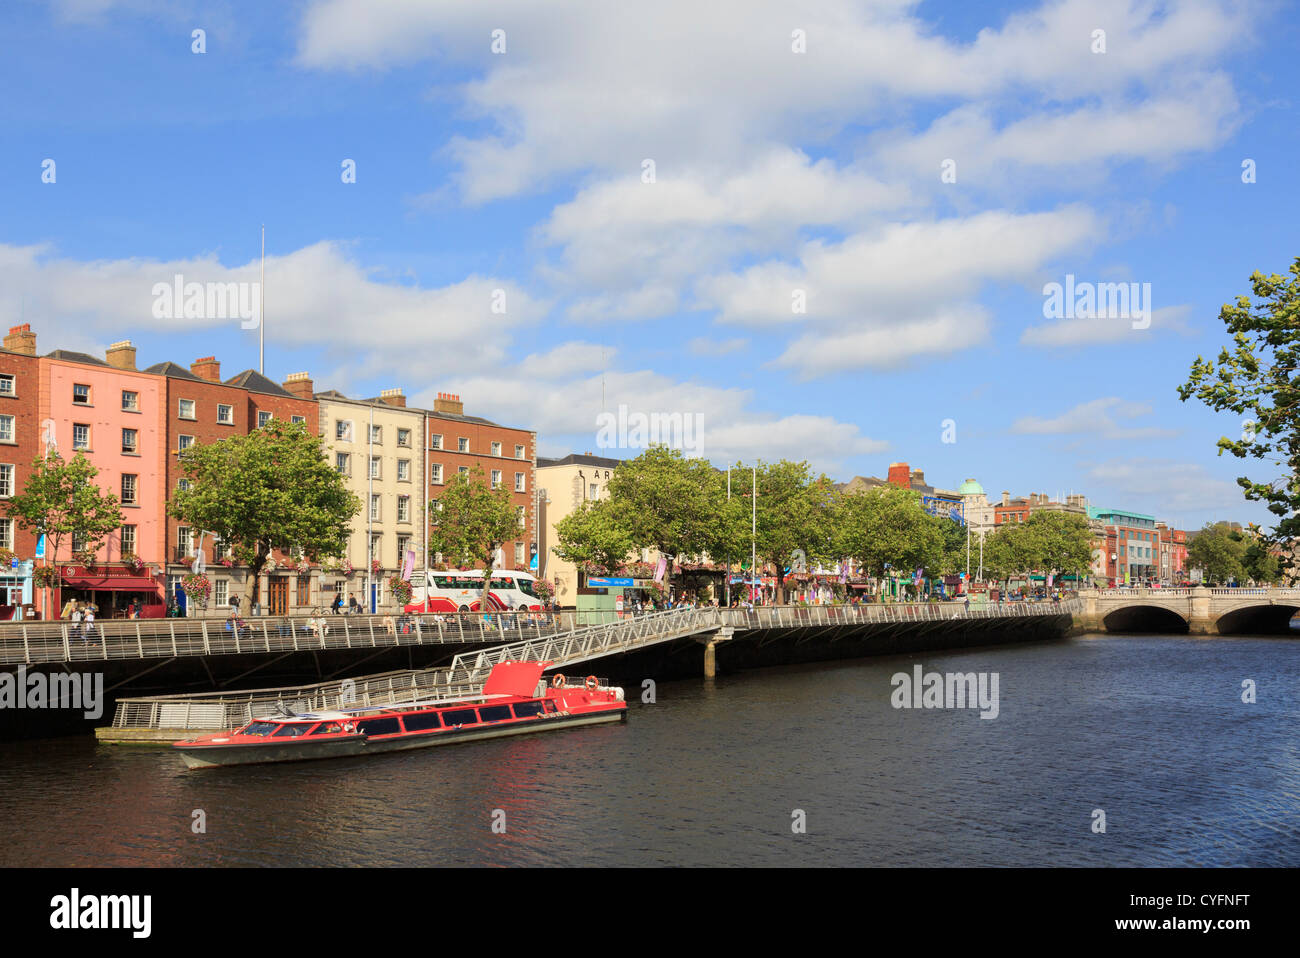 View across the River Liffey to Batchelor's Walk with cruise boat moored by jetty from Temple Bar, Dublin, Ireland, - Stock Image